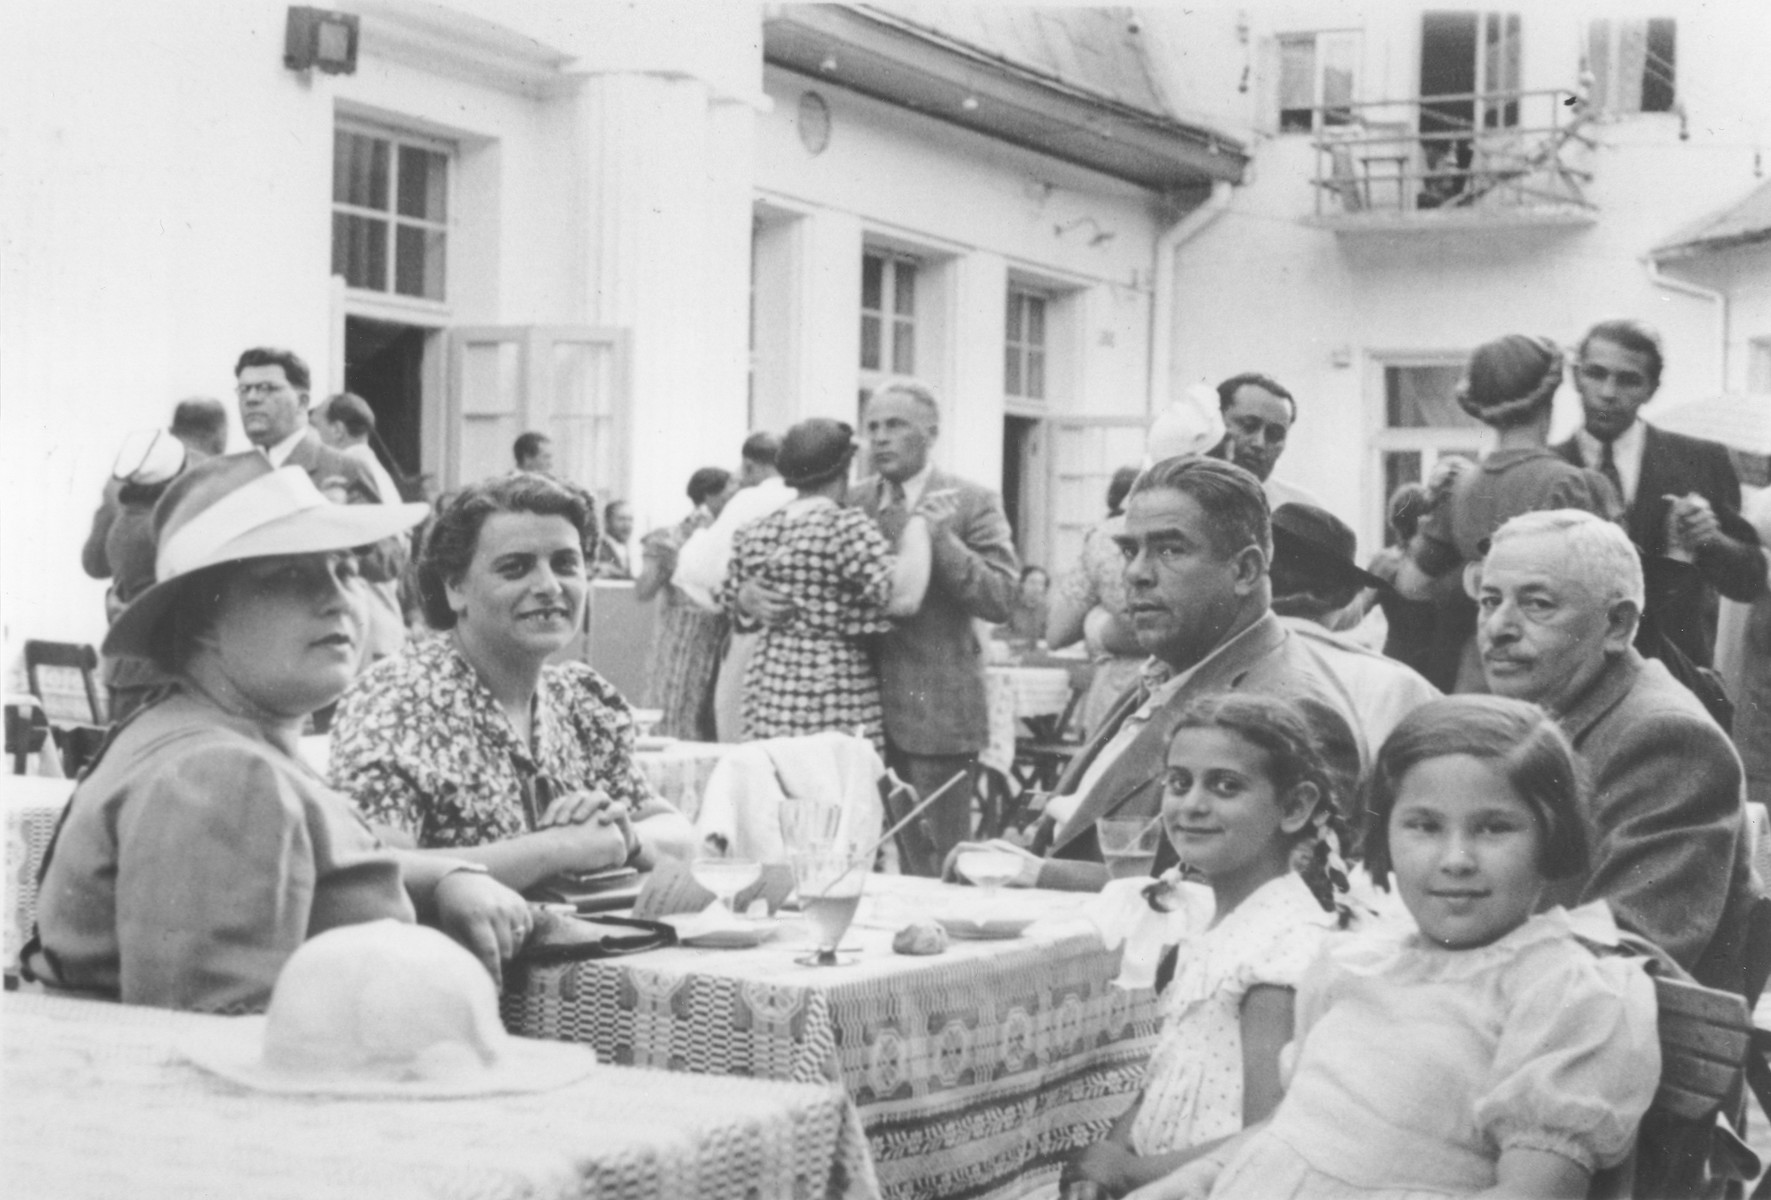 The Berkowicz family eats in an outdoor cafe with friends and relatives while on vacation in the resort town of Krynica,   Among those pictures are Bina Berkowicz (second from the left), Basia Berkowicz (second child from the right) and Wilek Taca (far right).